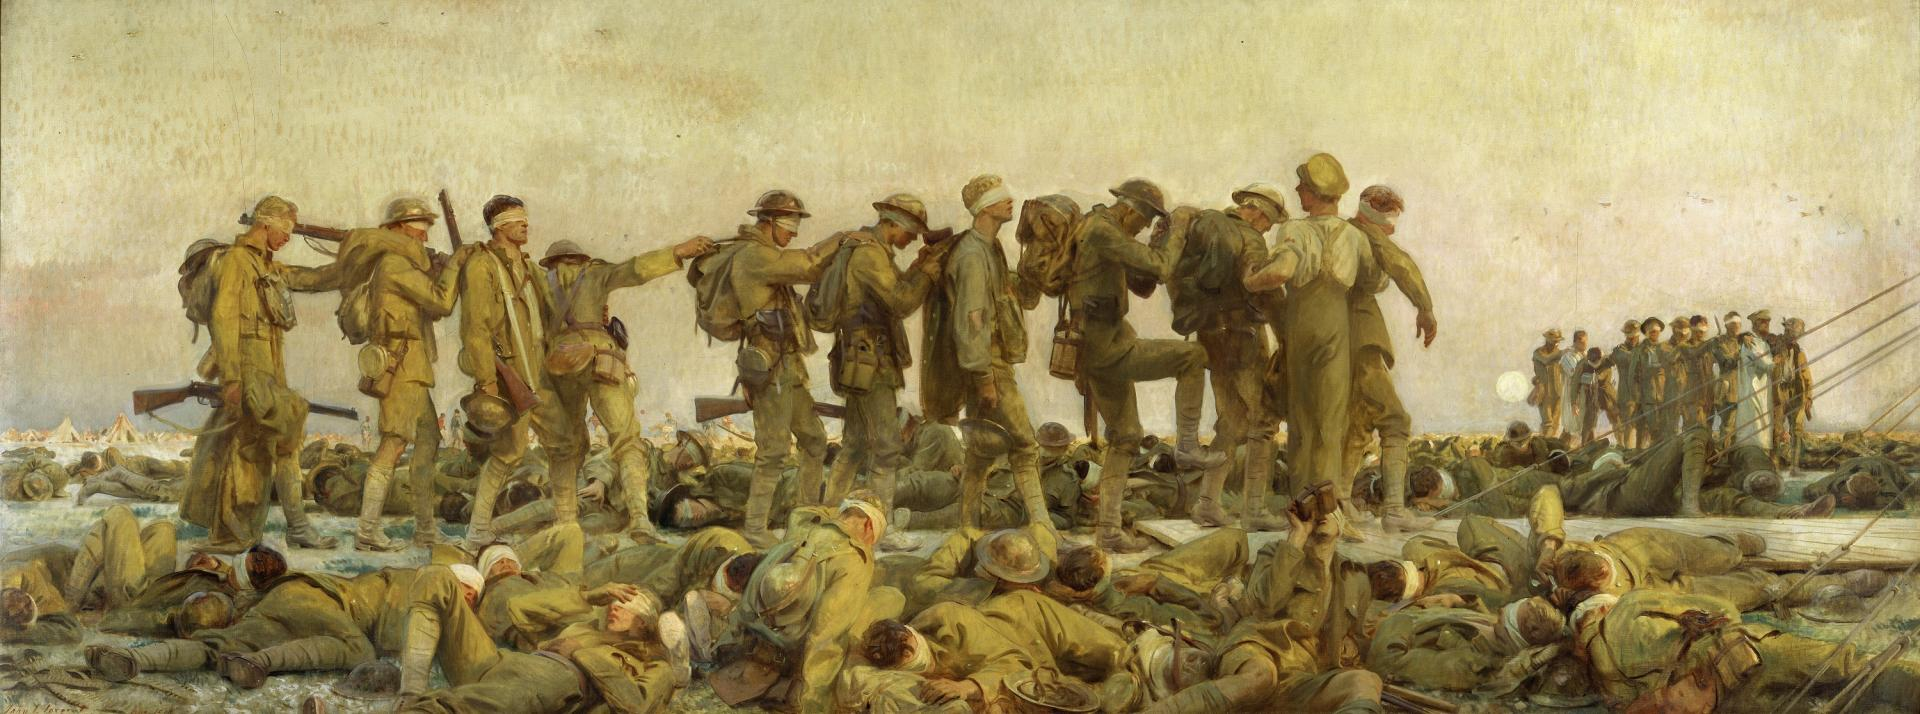 Gassed by John Singer Sargent,